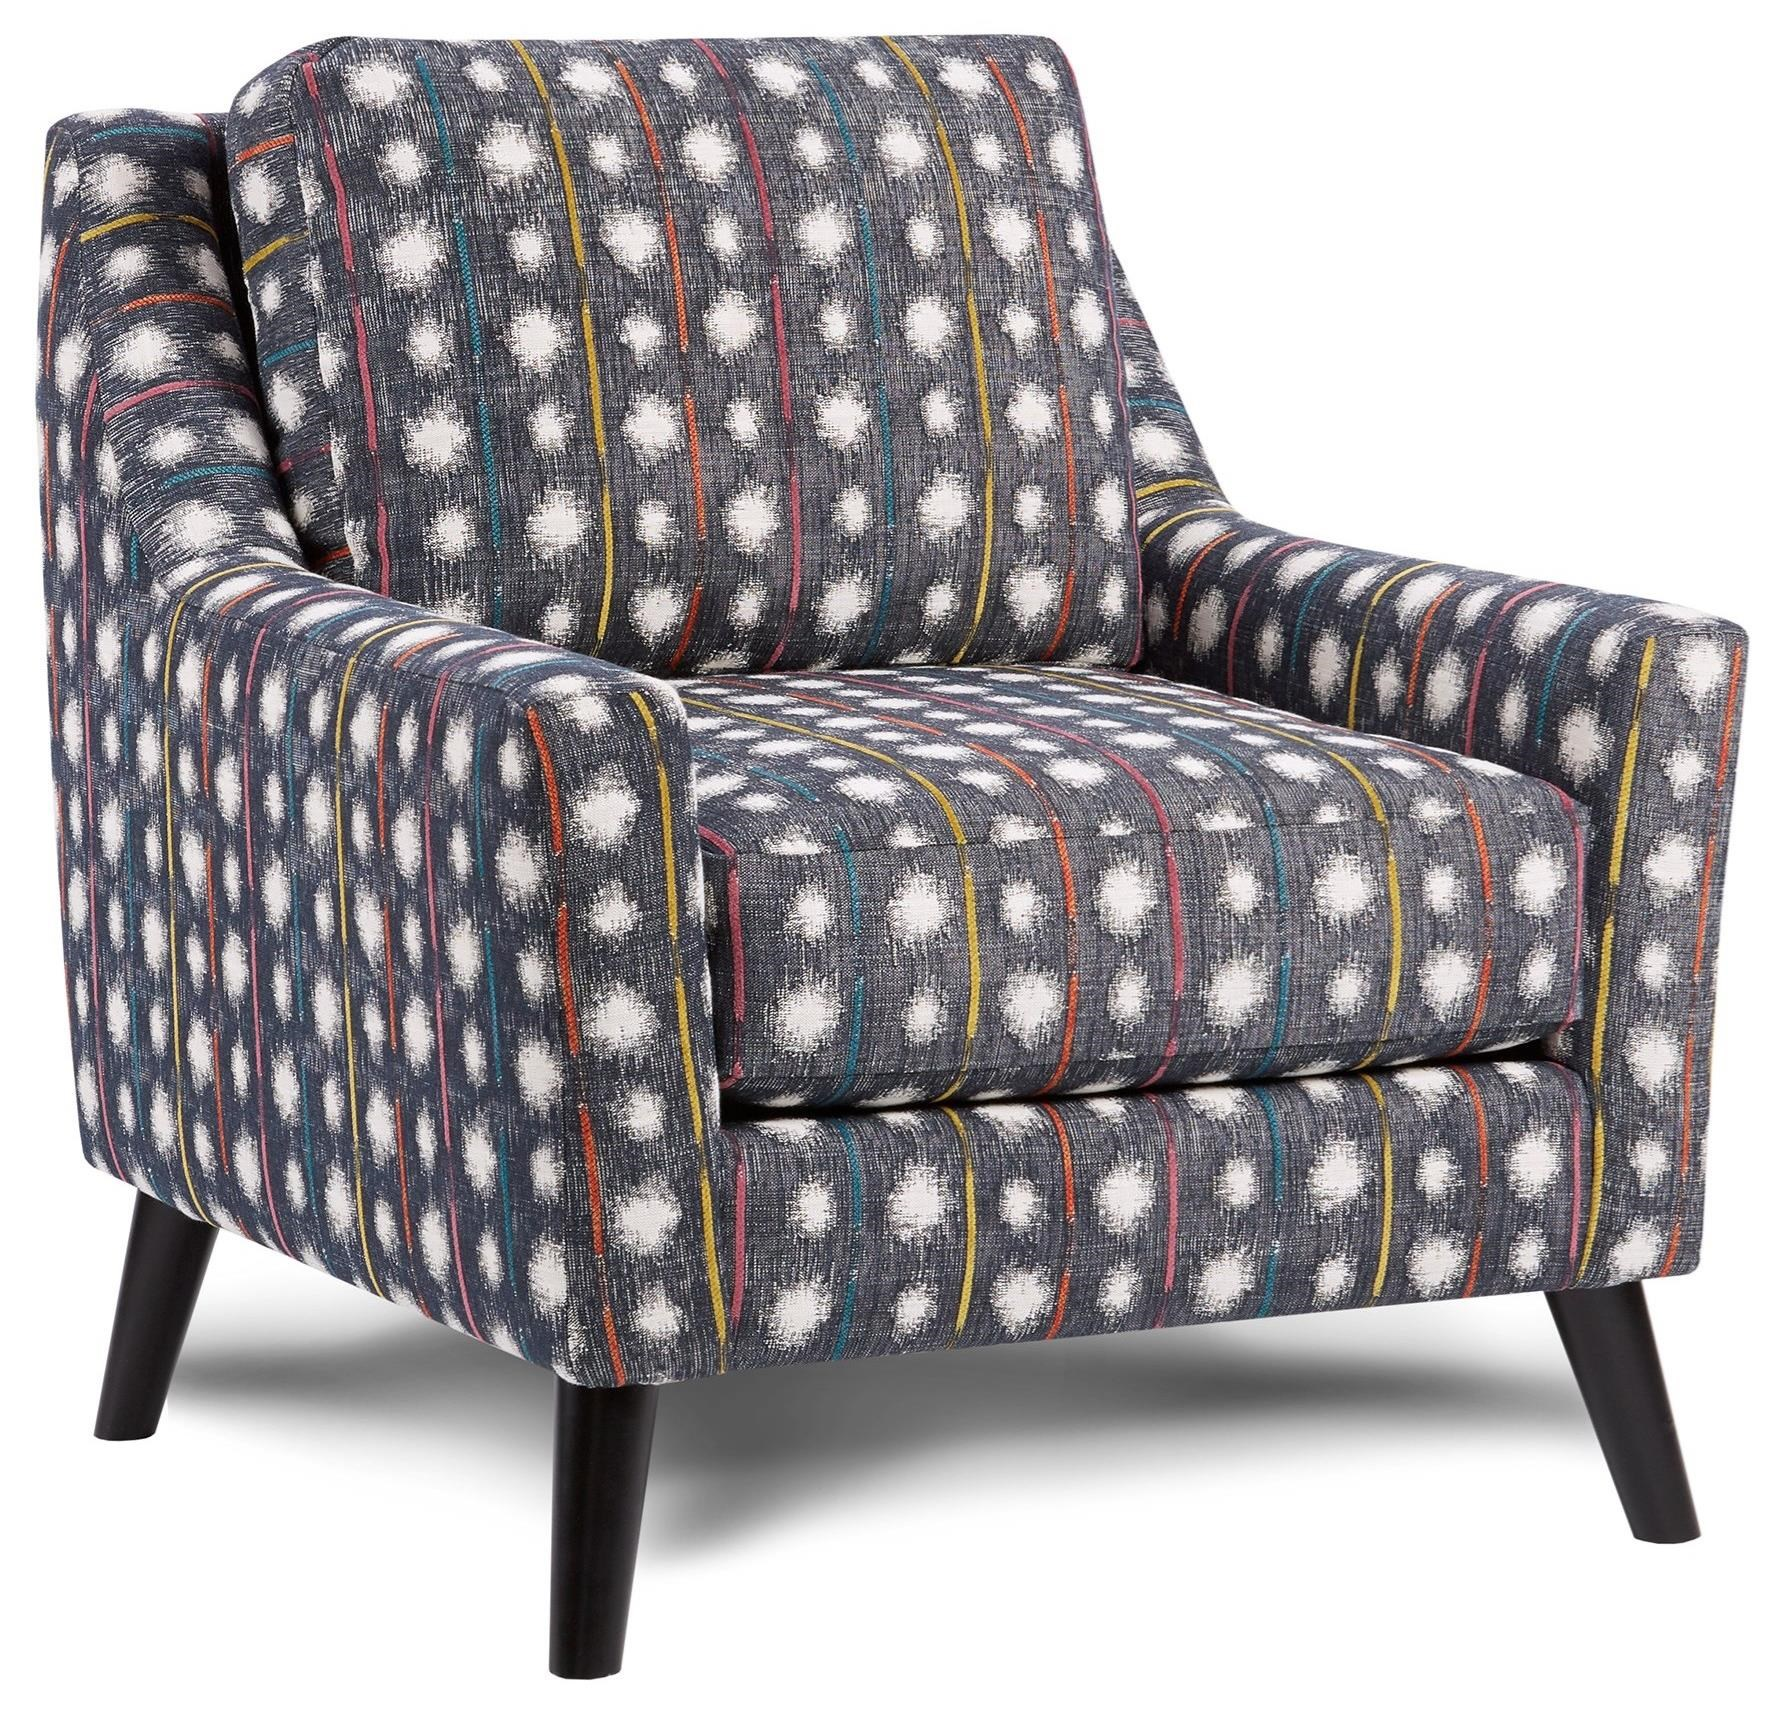 290 Upholstered Chair by Fusion Furniture at Becker Furniture